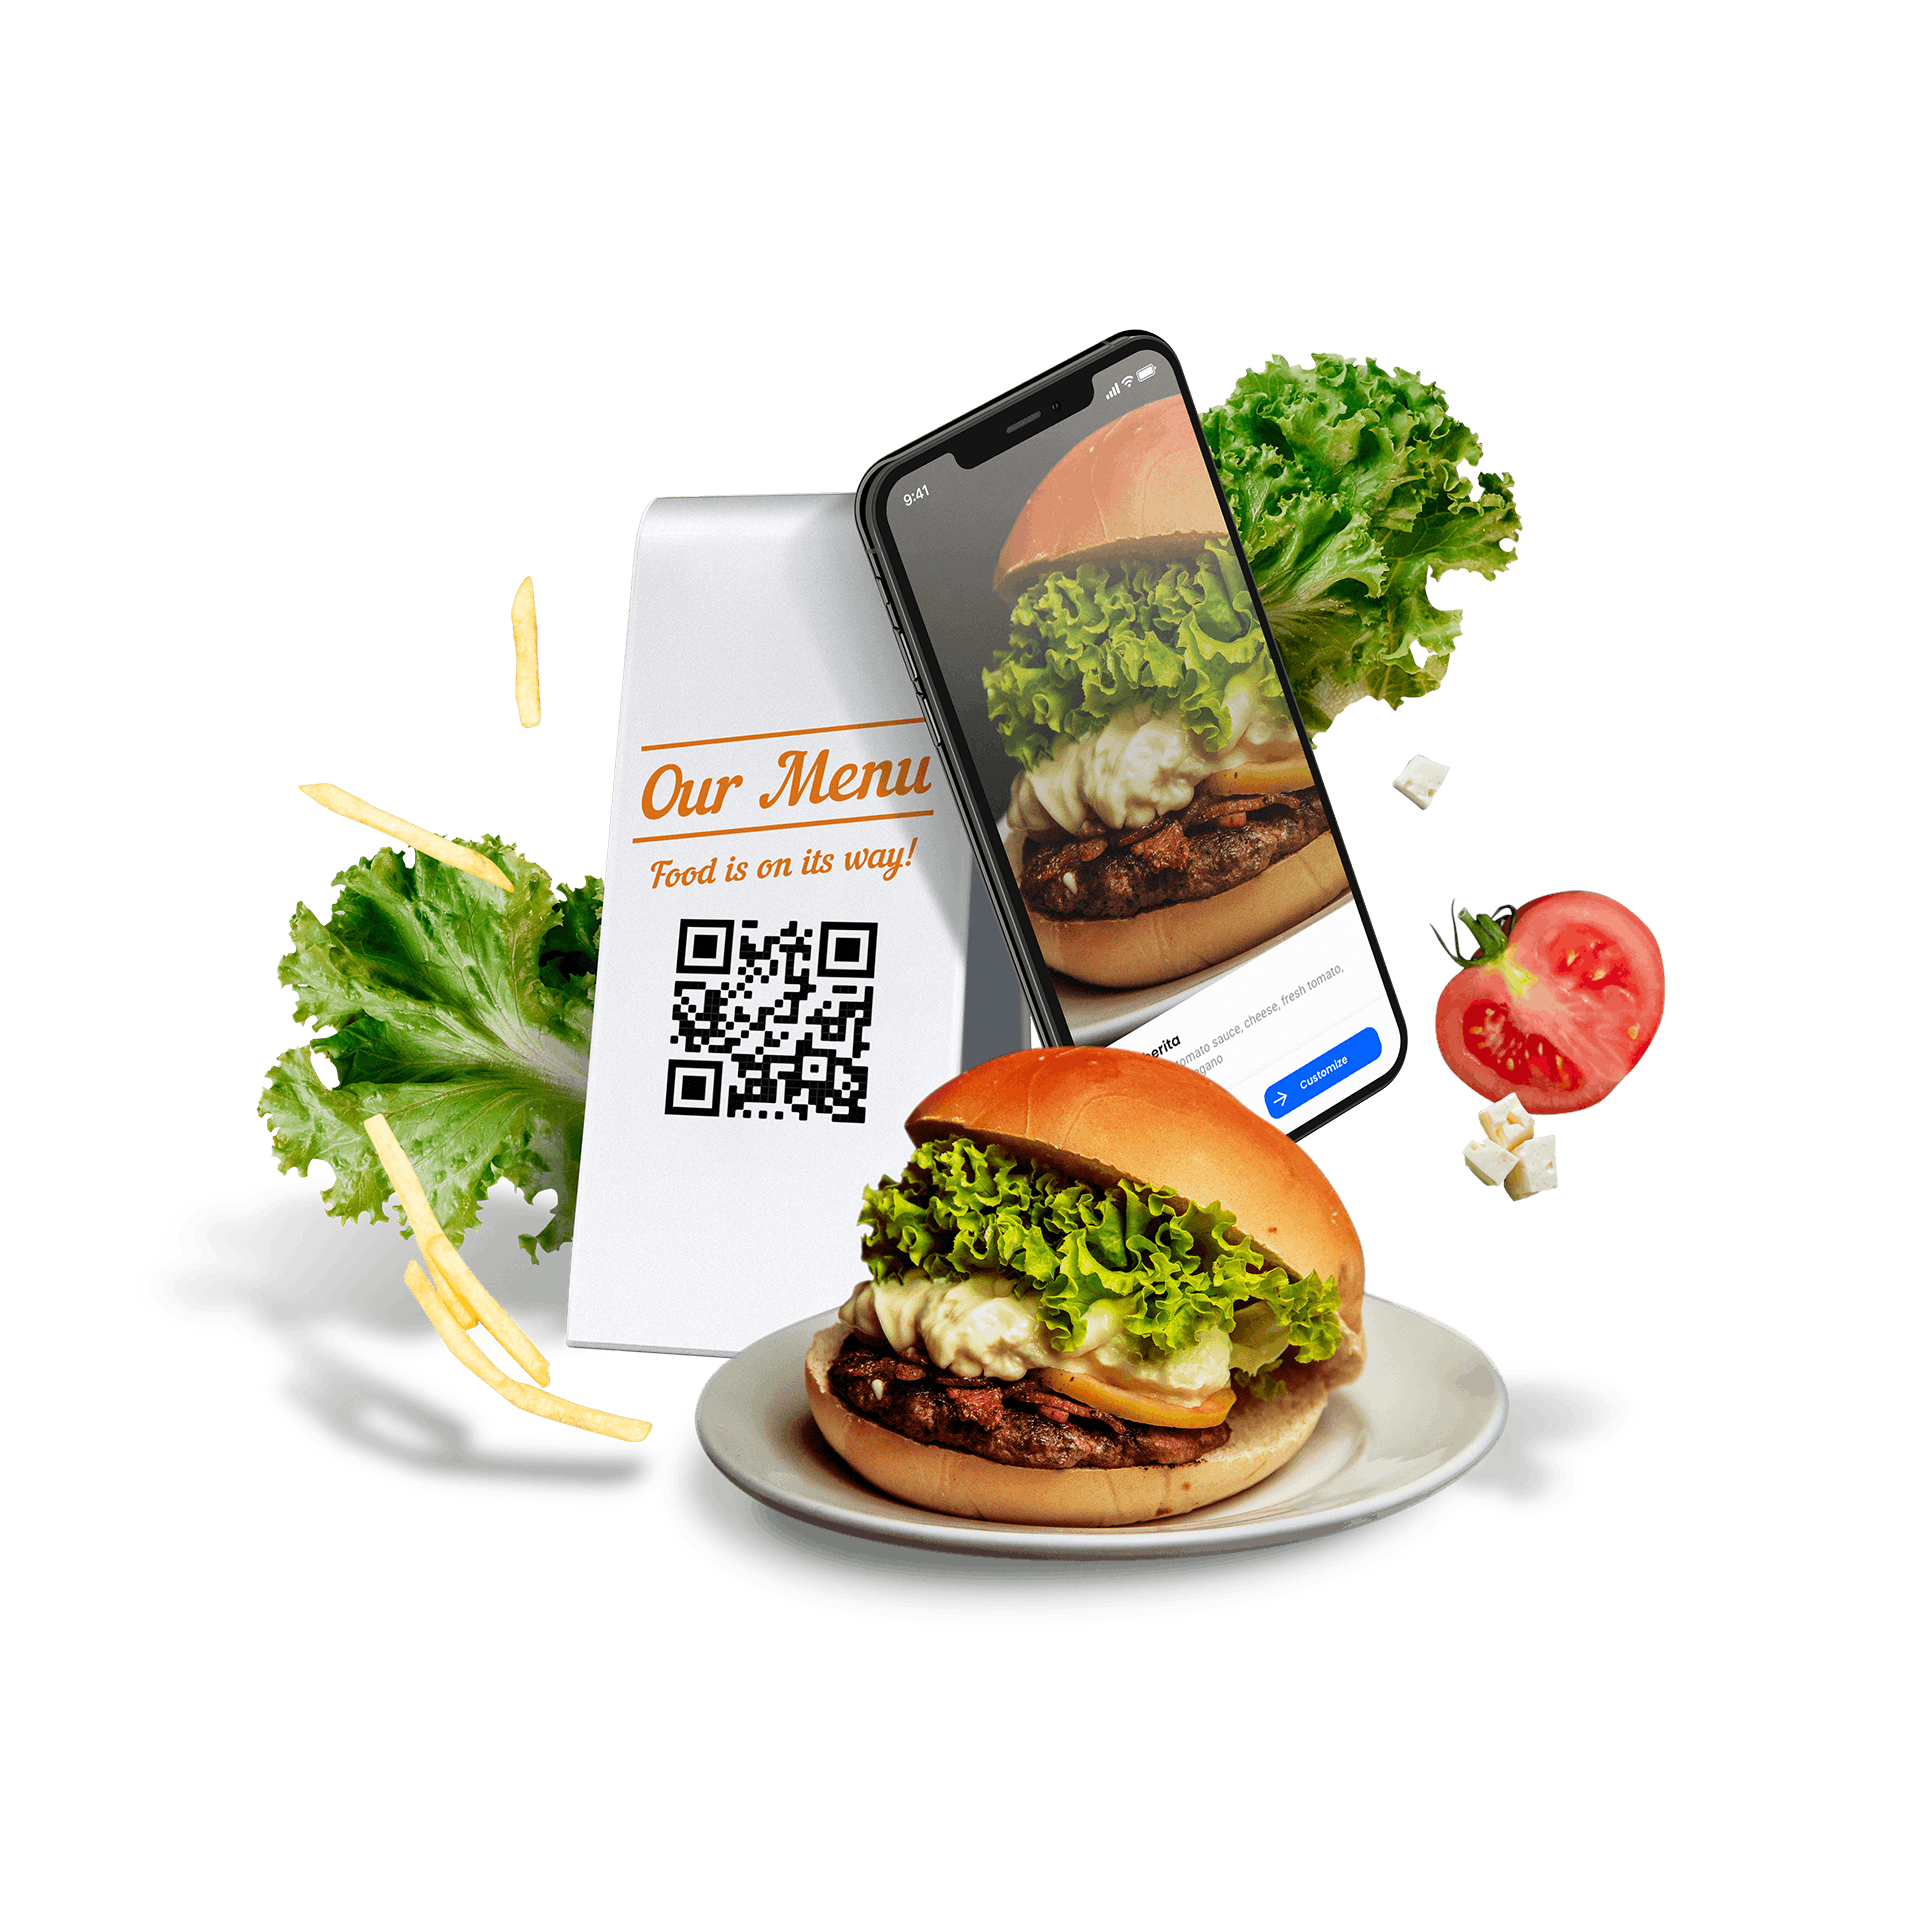 Table Ordering Image